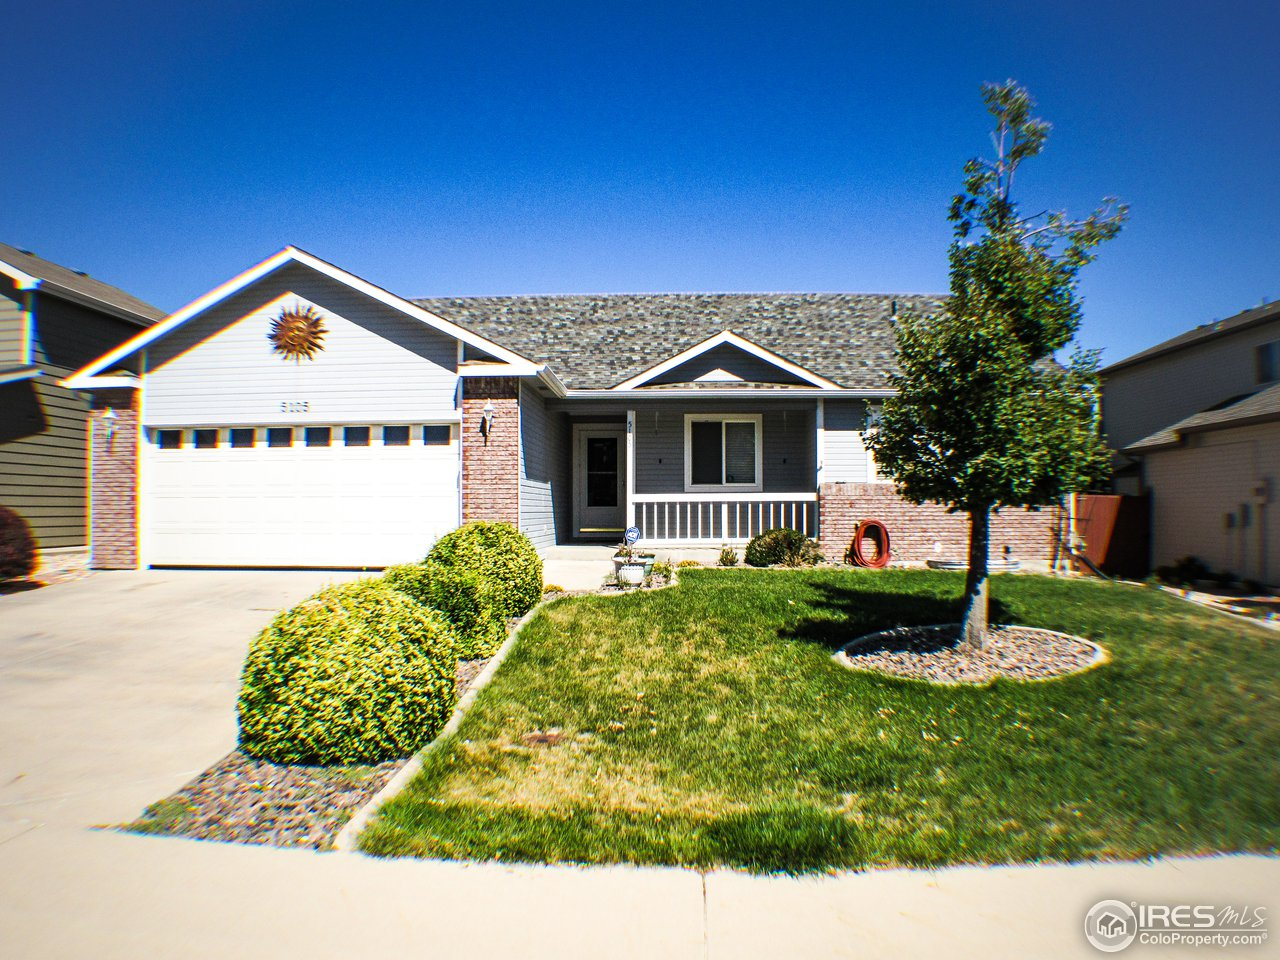 This delightful ranch style home has a finished basement with a wonderful storage room.  There are 4 bedrooms, 3 bathroom, laundry room, large pantry and a fantastic open layout. Included in the sale is a spacious shed in the back yard.  The residence is located in a charming neighborhood in West Greeley and there is an fantastic pool within a few blocks of the property.